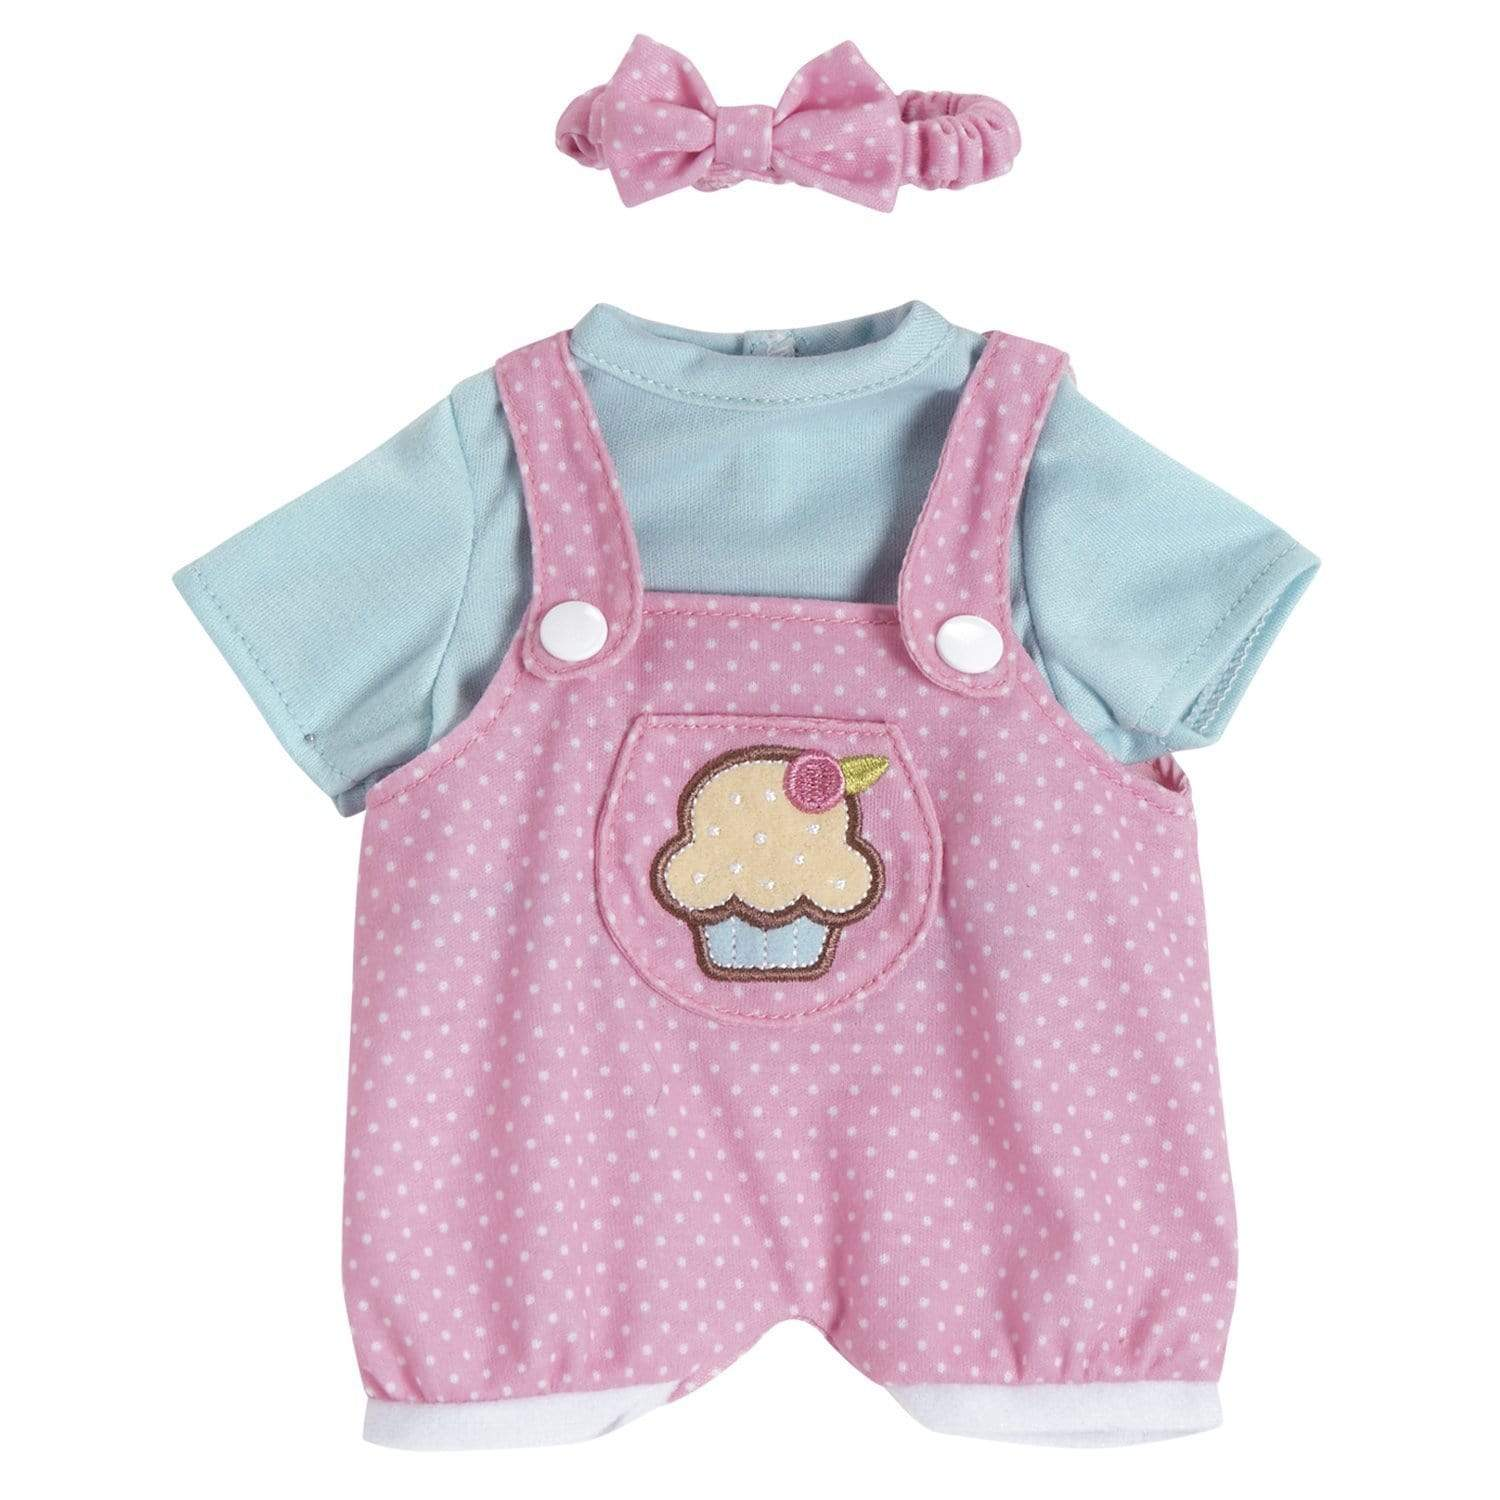 "Cupcake Jumper"" Baby Doll Clothes Fits 13"" PlayTime Doll"